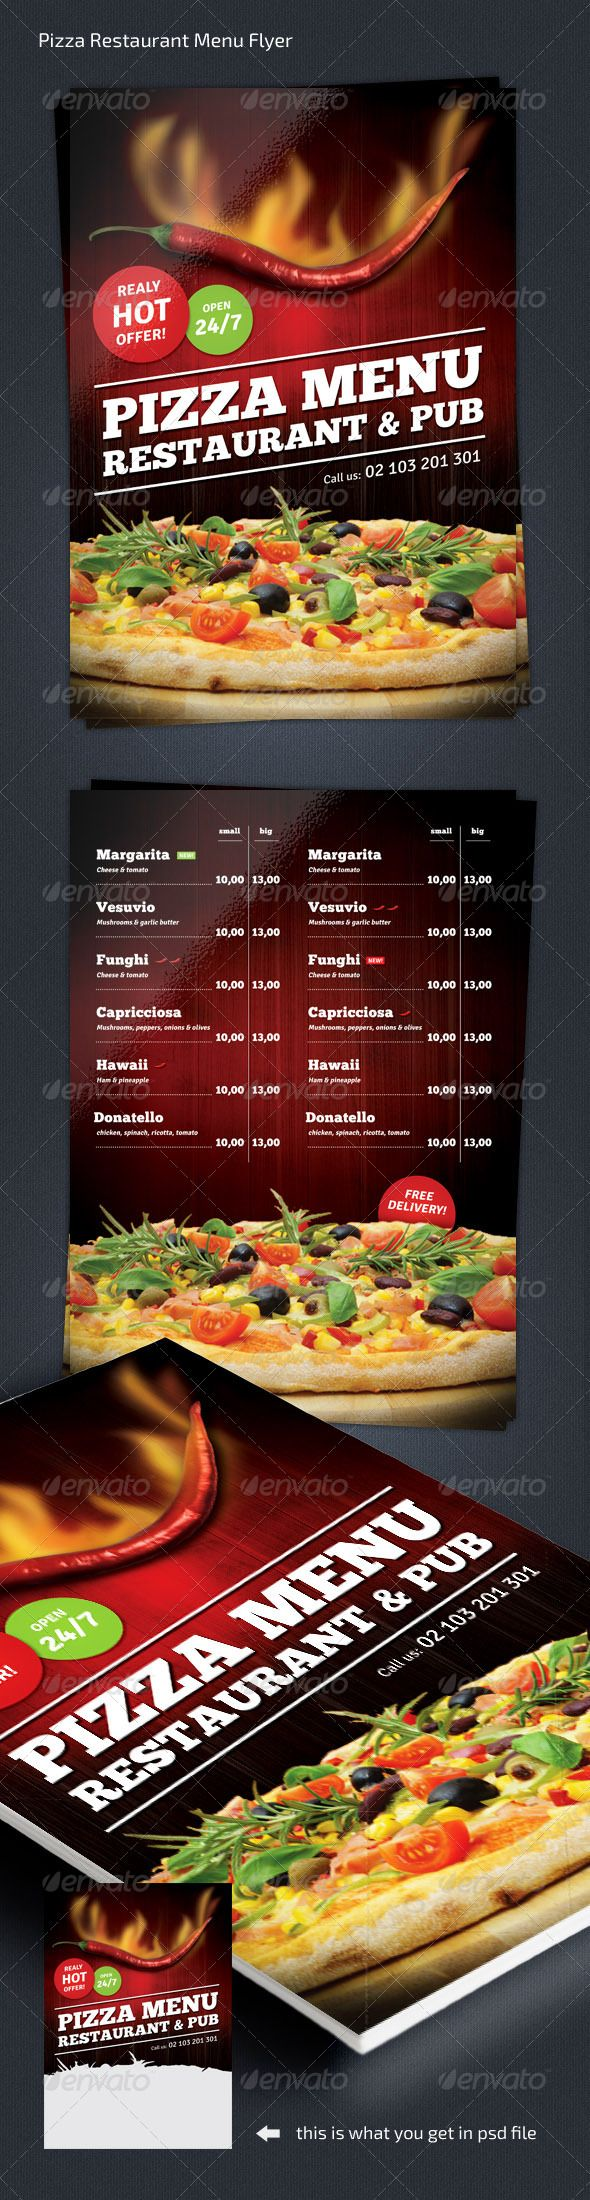 Pizza Restaurant Menu Flyer Template #design Download: http://graphicriver.net/item/pizza-restaurant-menu-flyer-a4/7930122?ref=ksioks